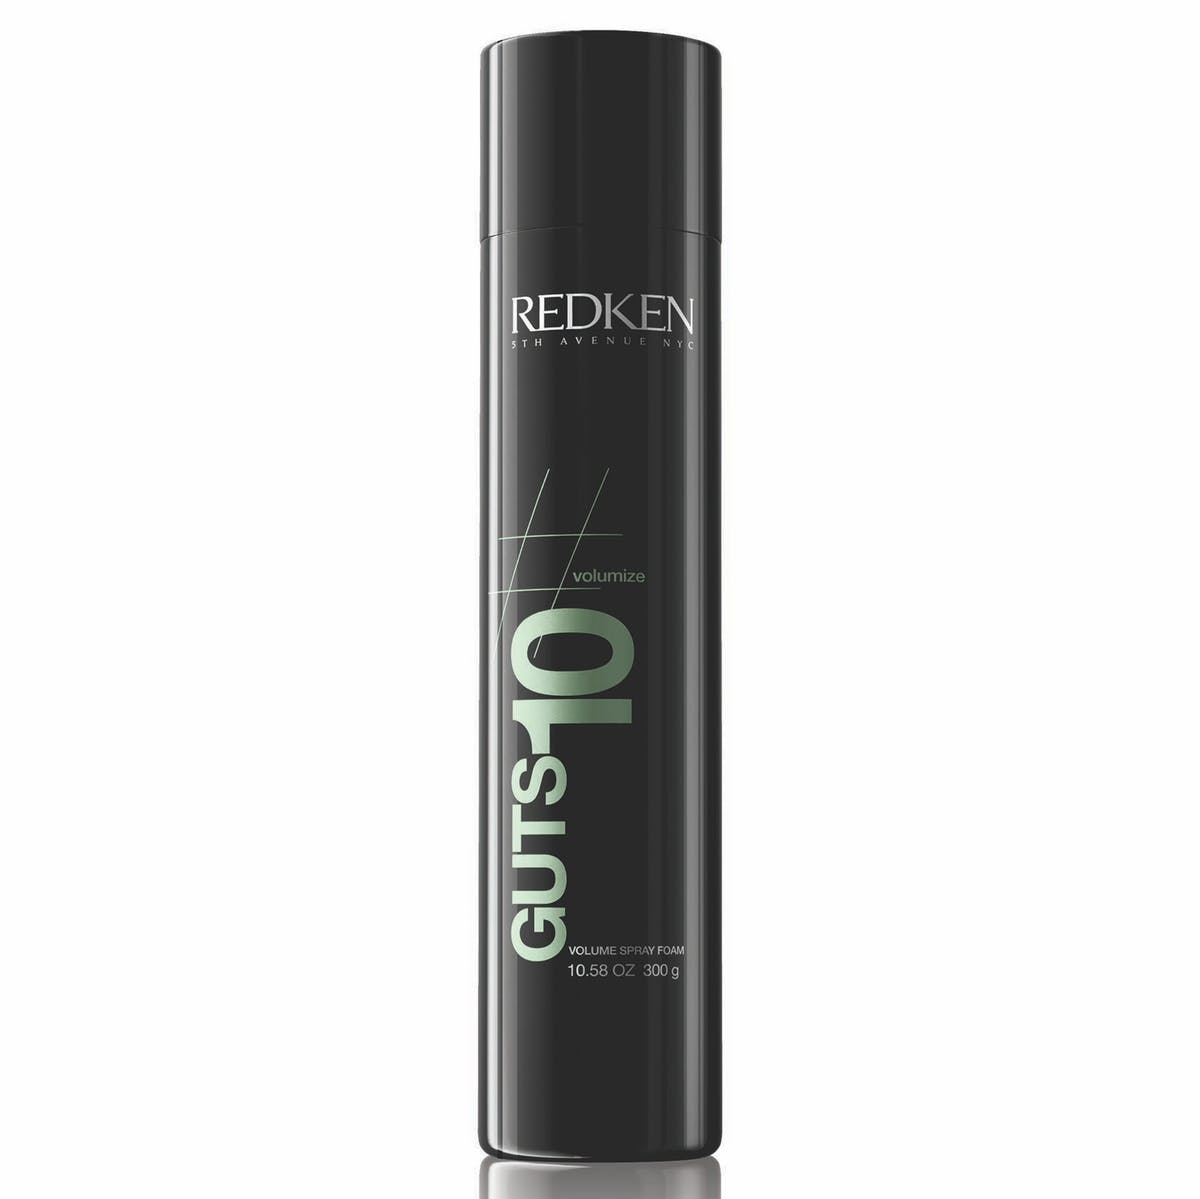 redken-guts-10-volume-spray-foam.jpg